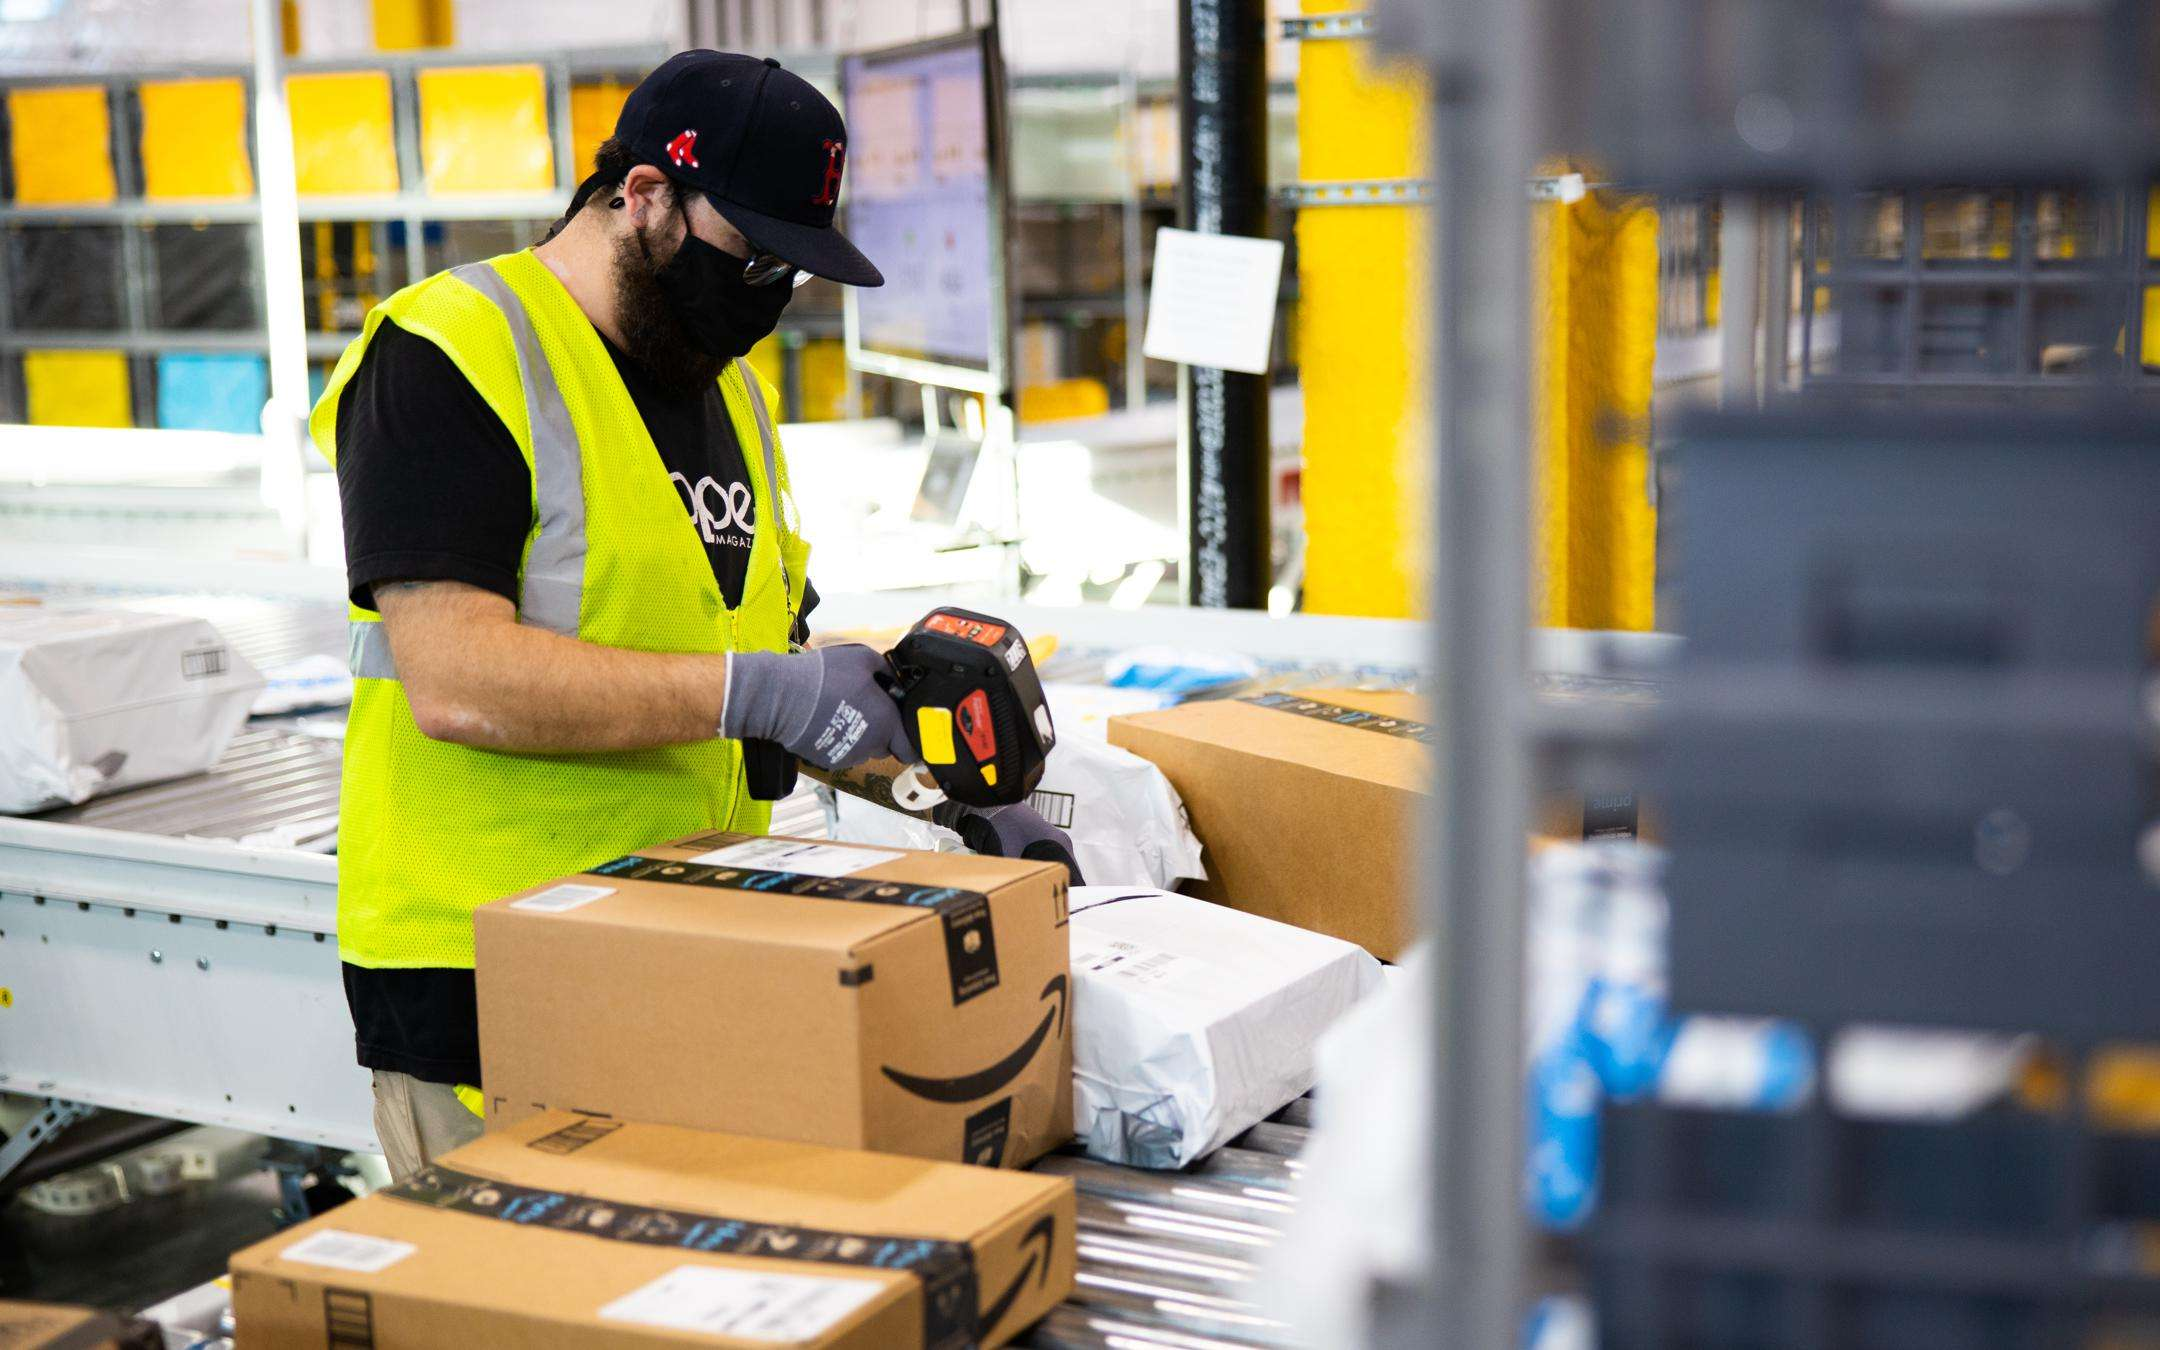 Accelerate with Amazon: the full potential of SMEs